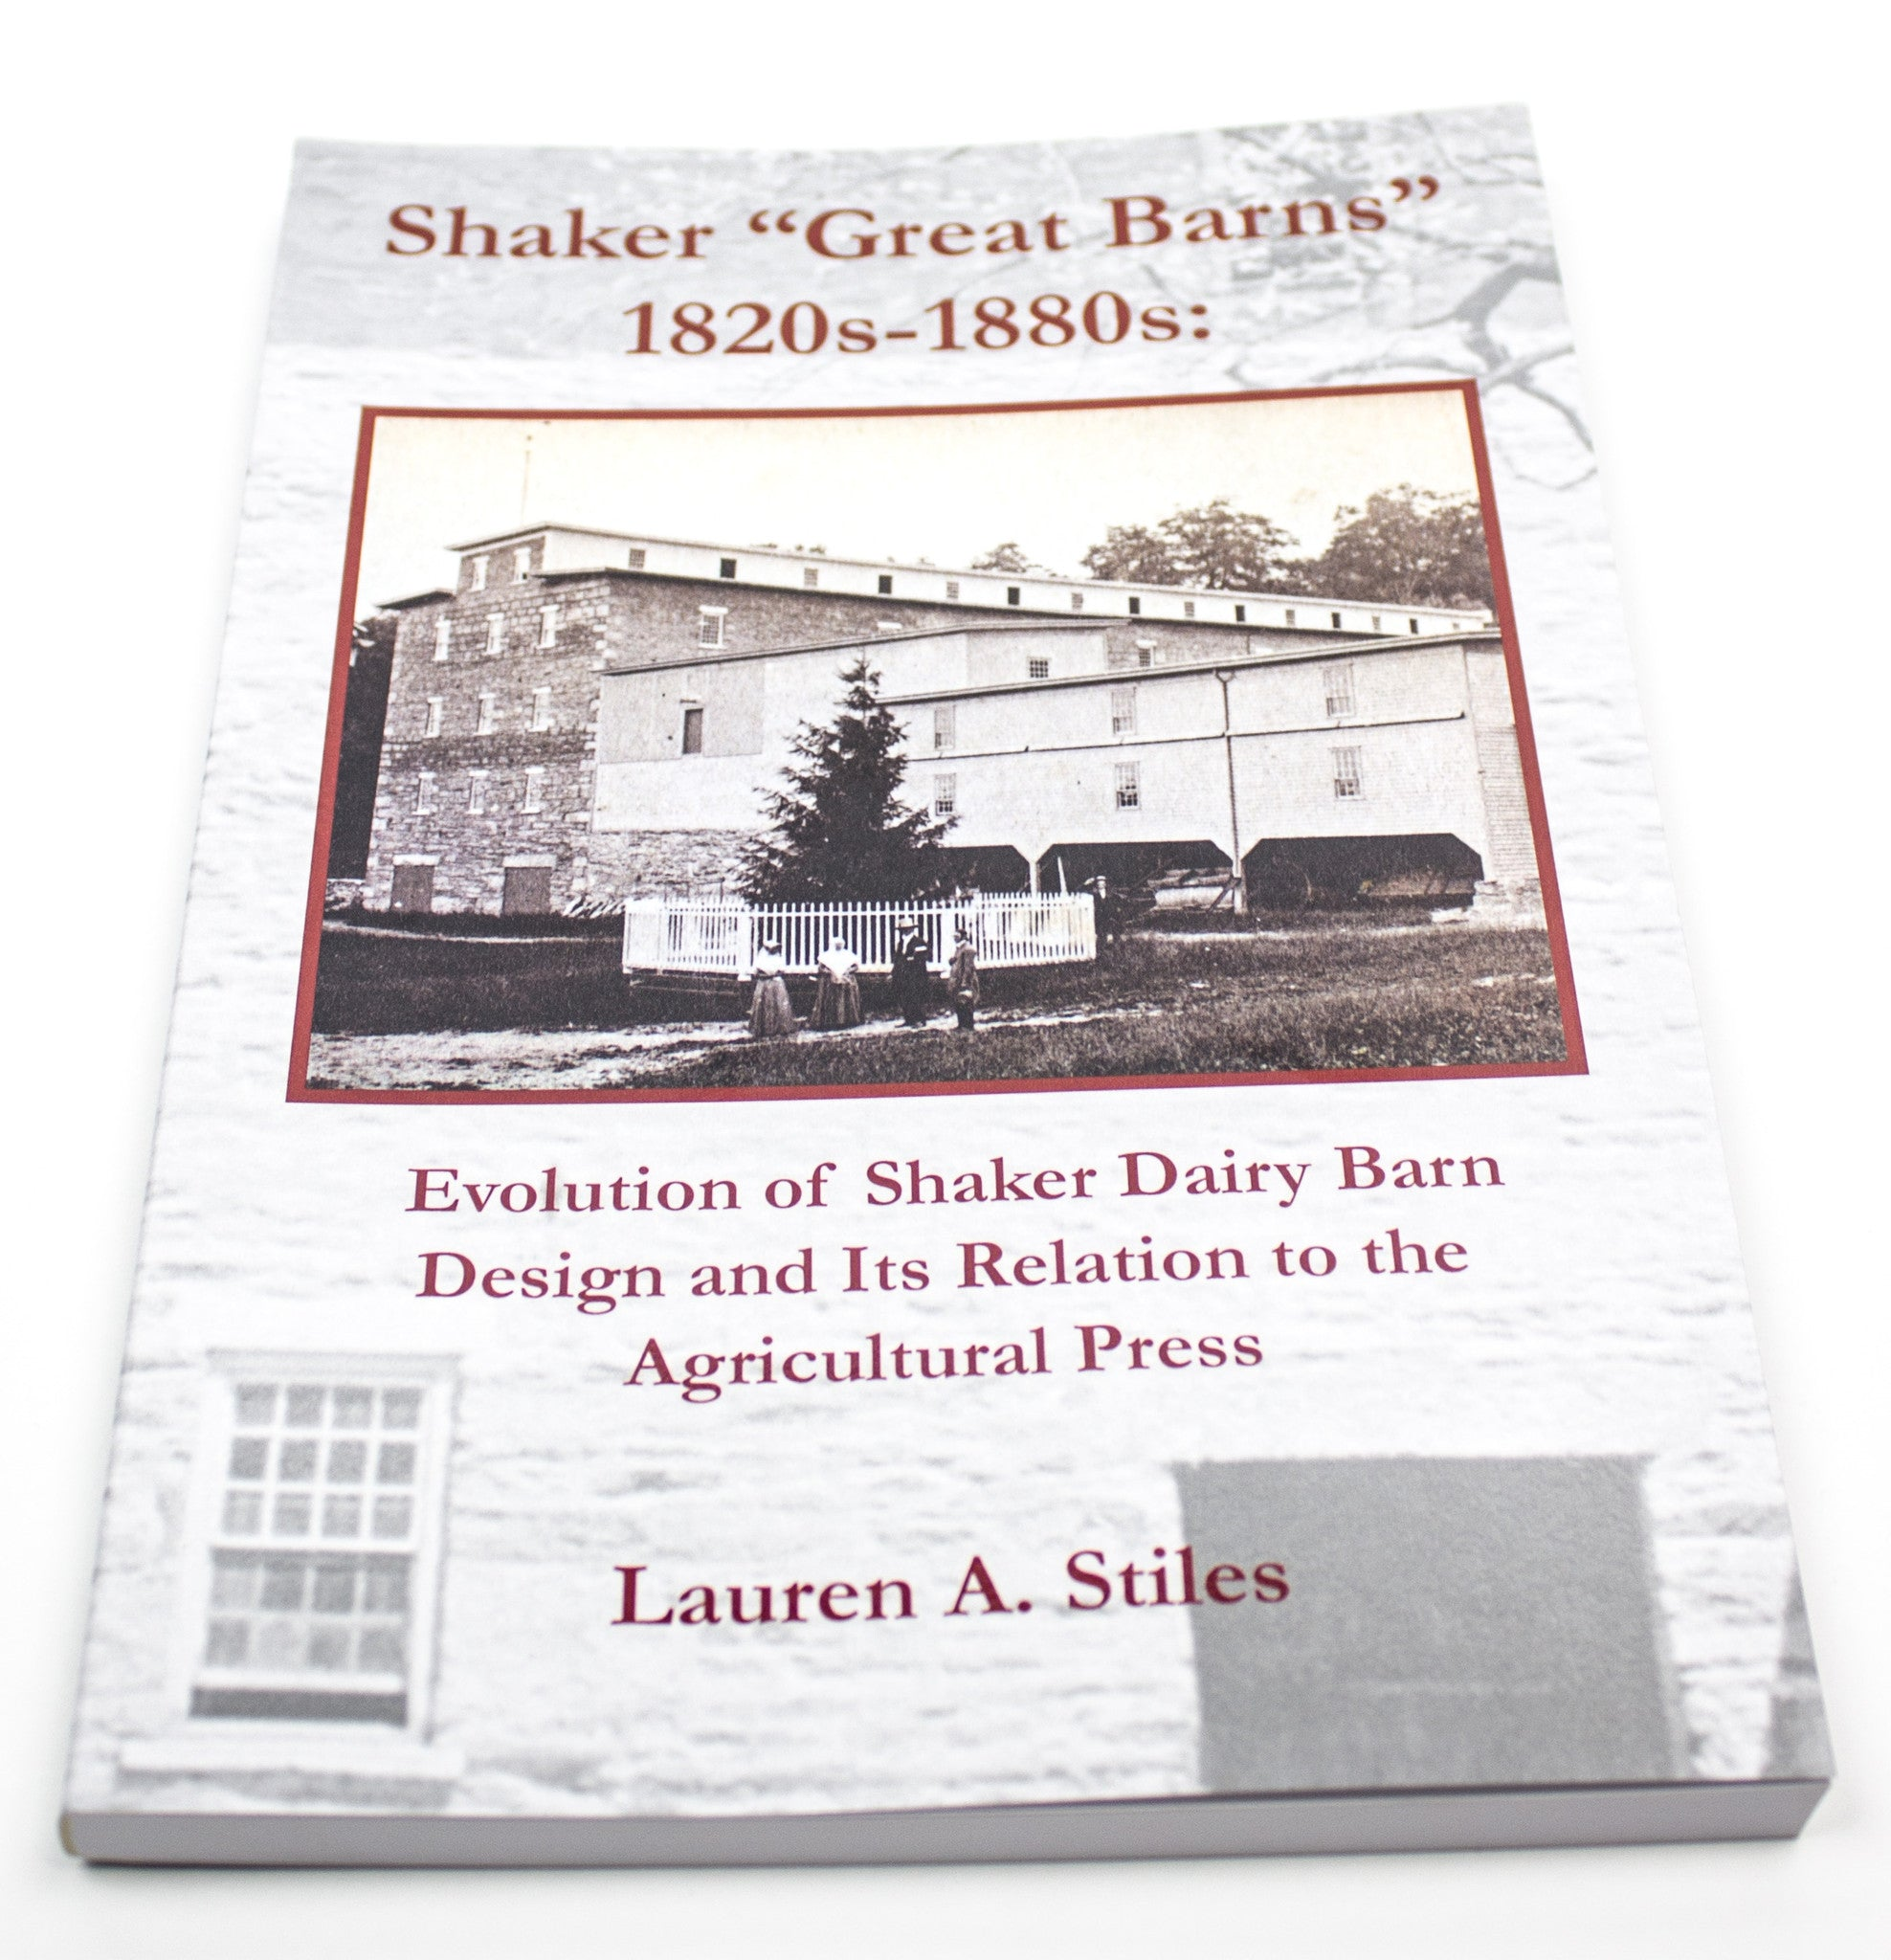 "Shaker ""Great Barns"" 1820s-1880s: Evolution of Shaker Dairy Barn Design and Its Relation to the Agricultural Press"